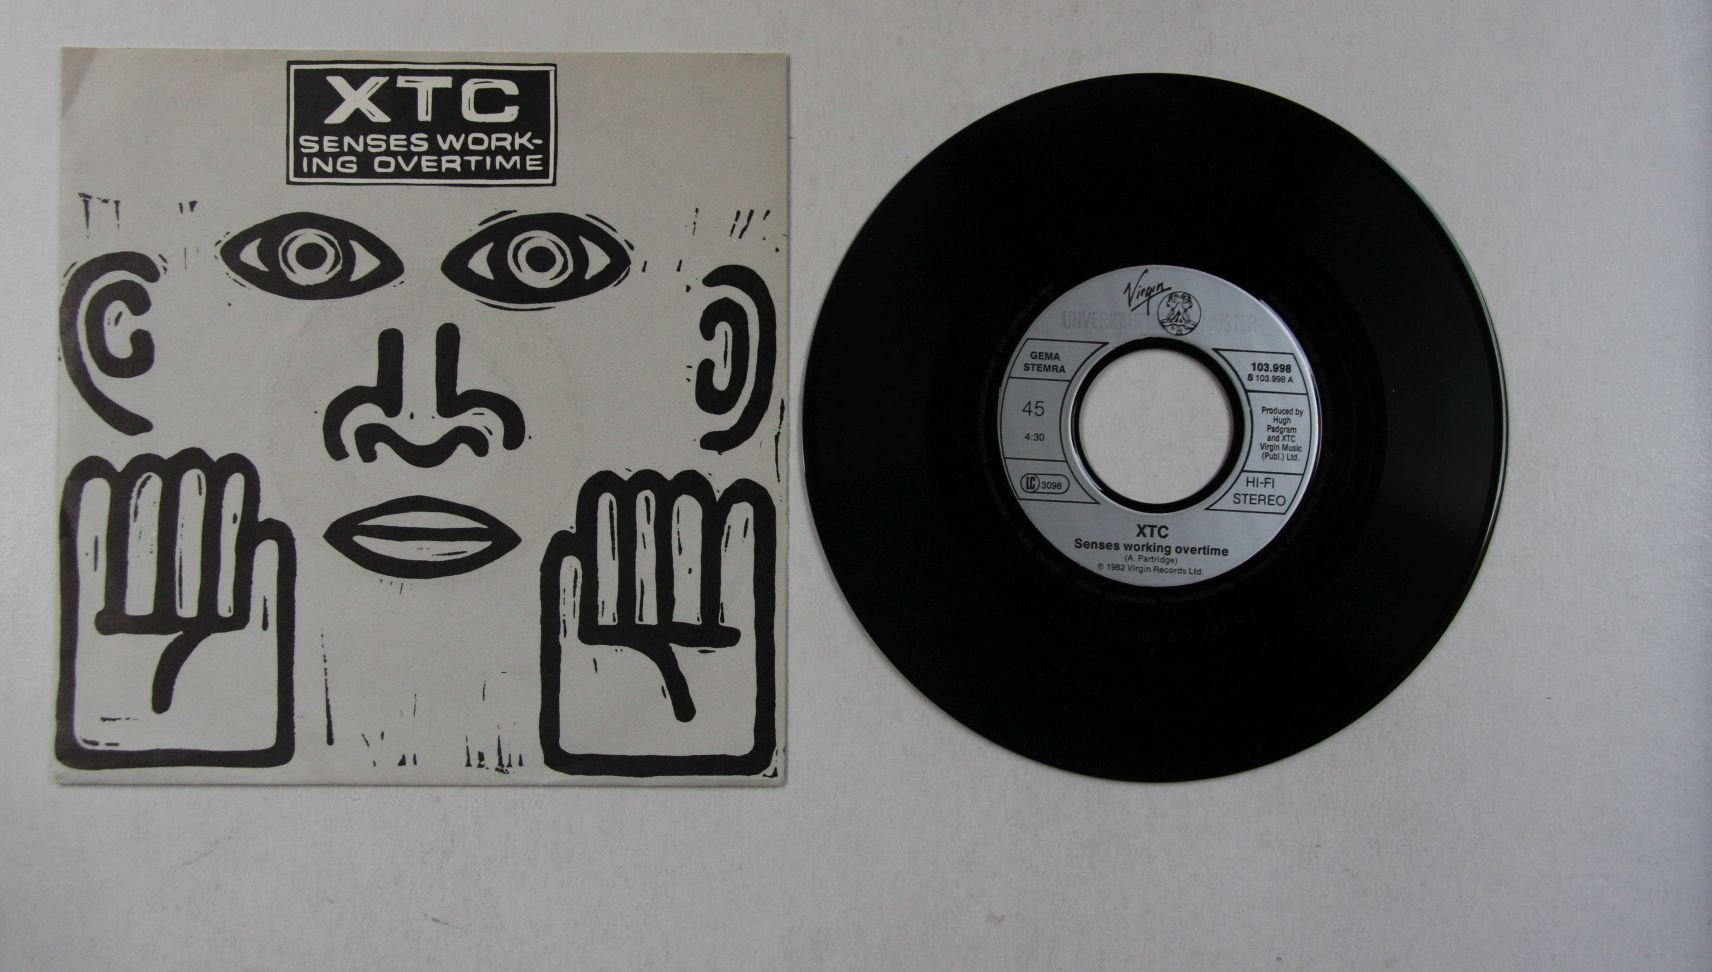 Xtc Senses Working Overtime Records Lps Vinyl And Cds